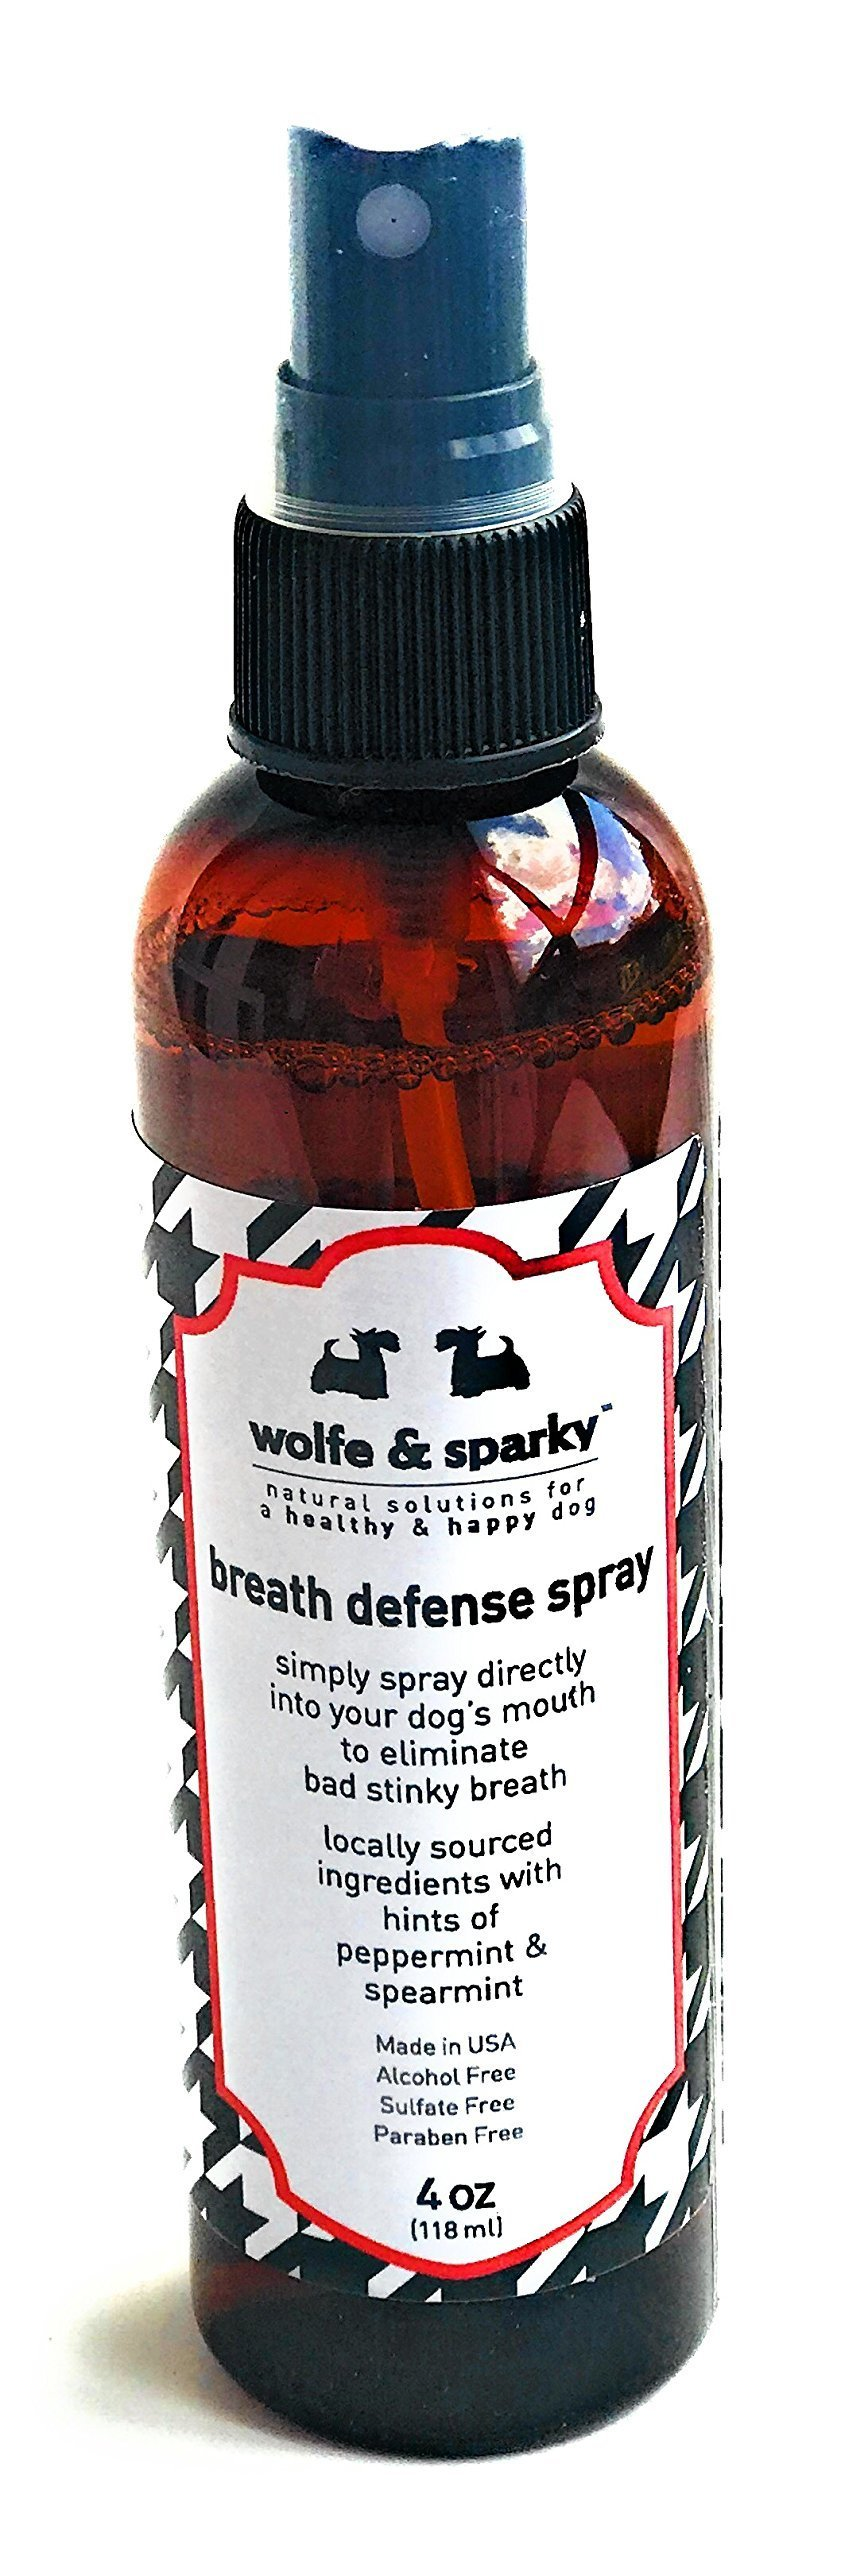 Wolfe & Sparky New!! Fights Plaque & Tartar!! NO More Stinky Dog Breath s Organic Minty Fresh Breath Defense Spray. A Quick Way to Keep Your Dog's Breath, Teeth, Gums Fresh & Clean! 4 Ounces by Wolfe & Sparky